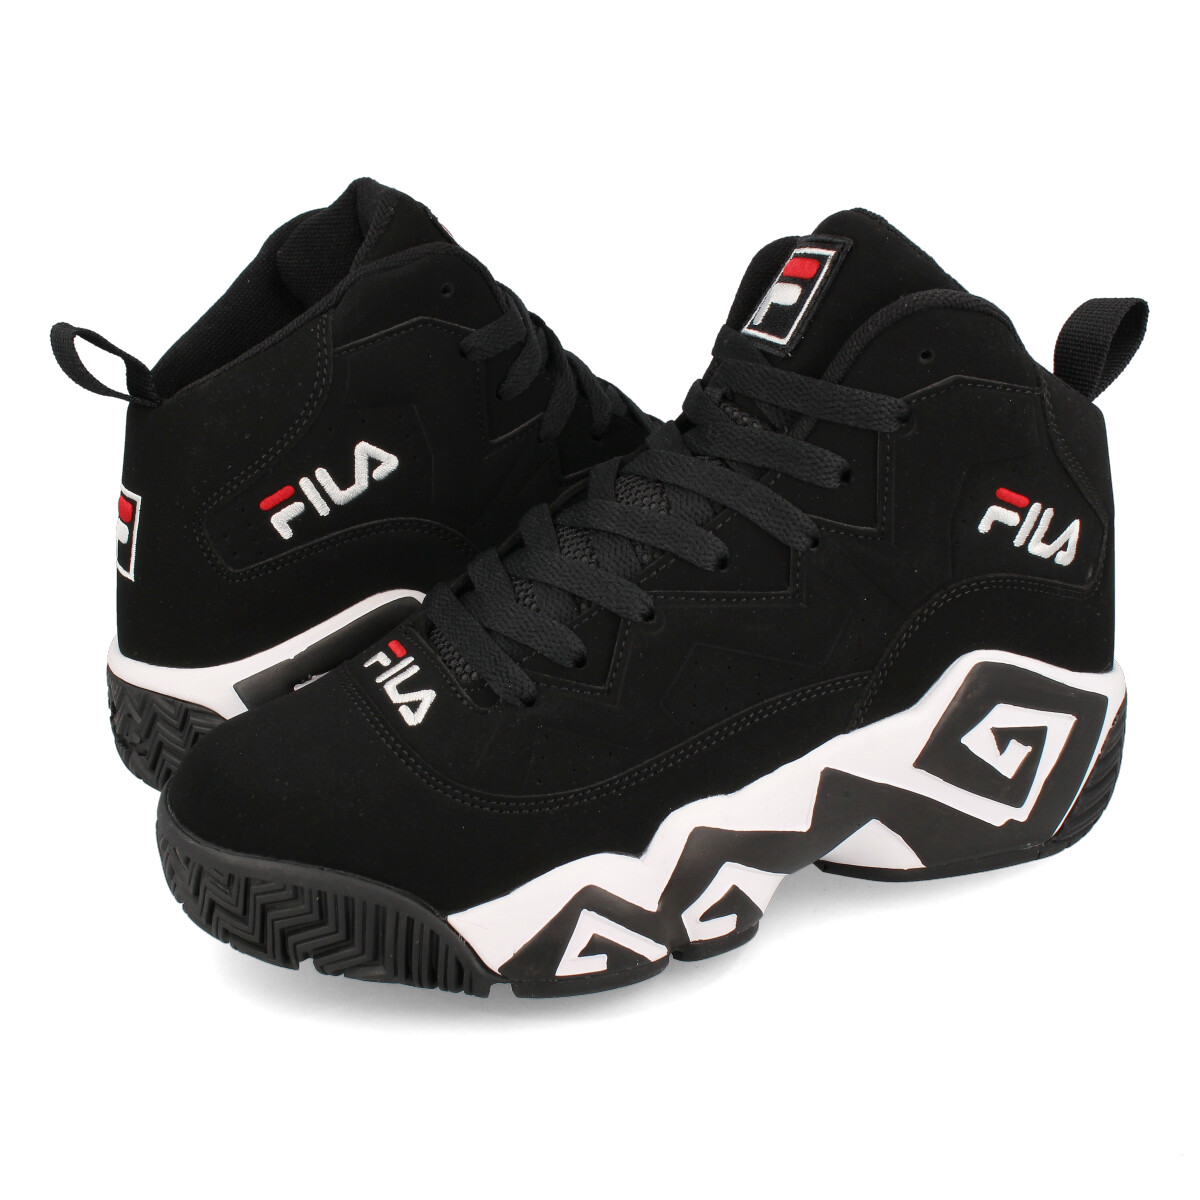 d42335bf2882 SELECT SHOP LOWTEX  FILA MB Fila MB BLACK